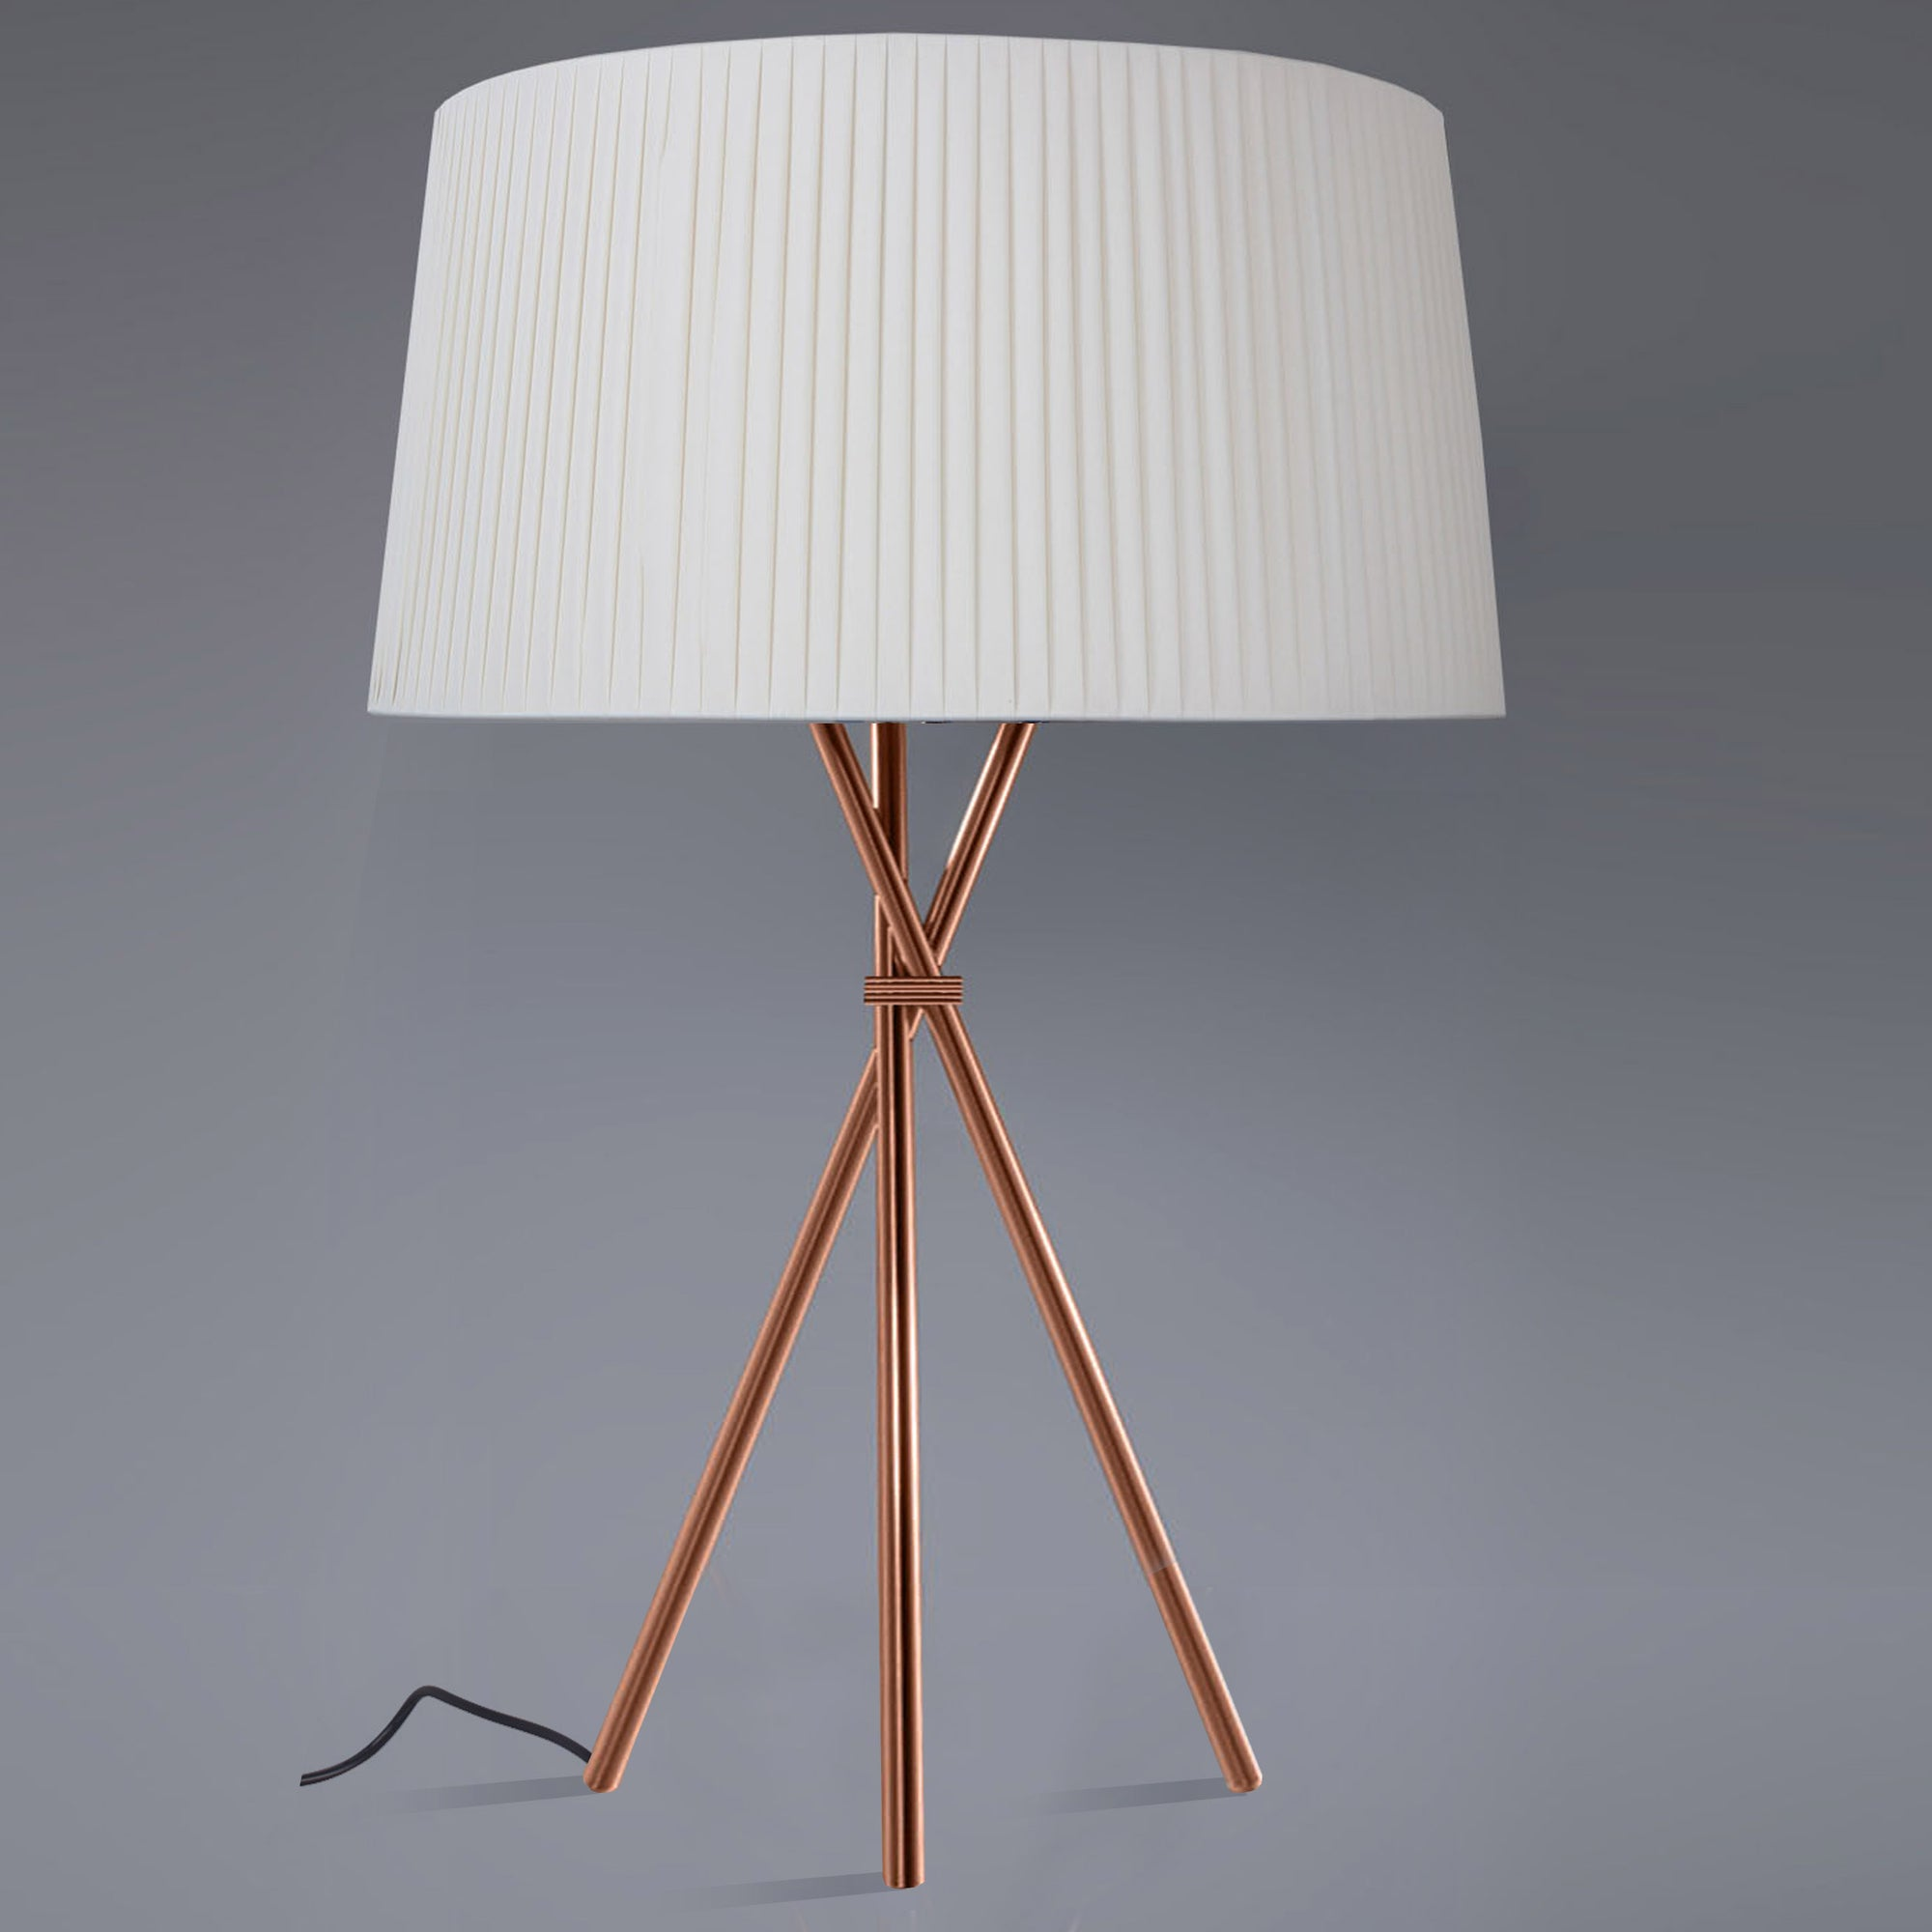 Table lamp CY-LTD-101/048-RG - ebarza